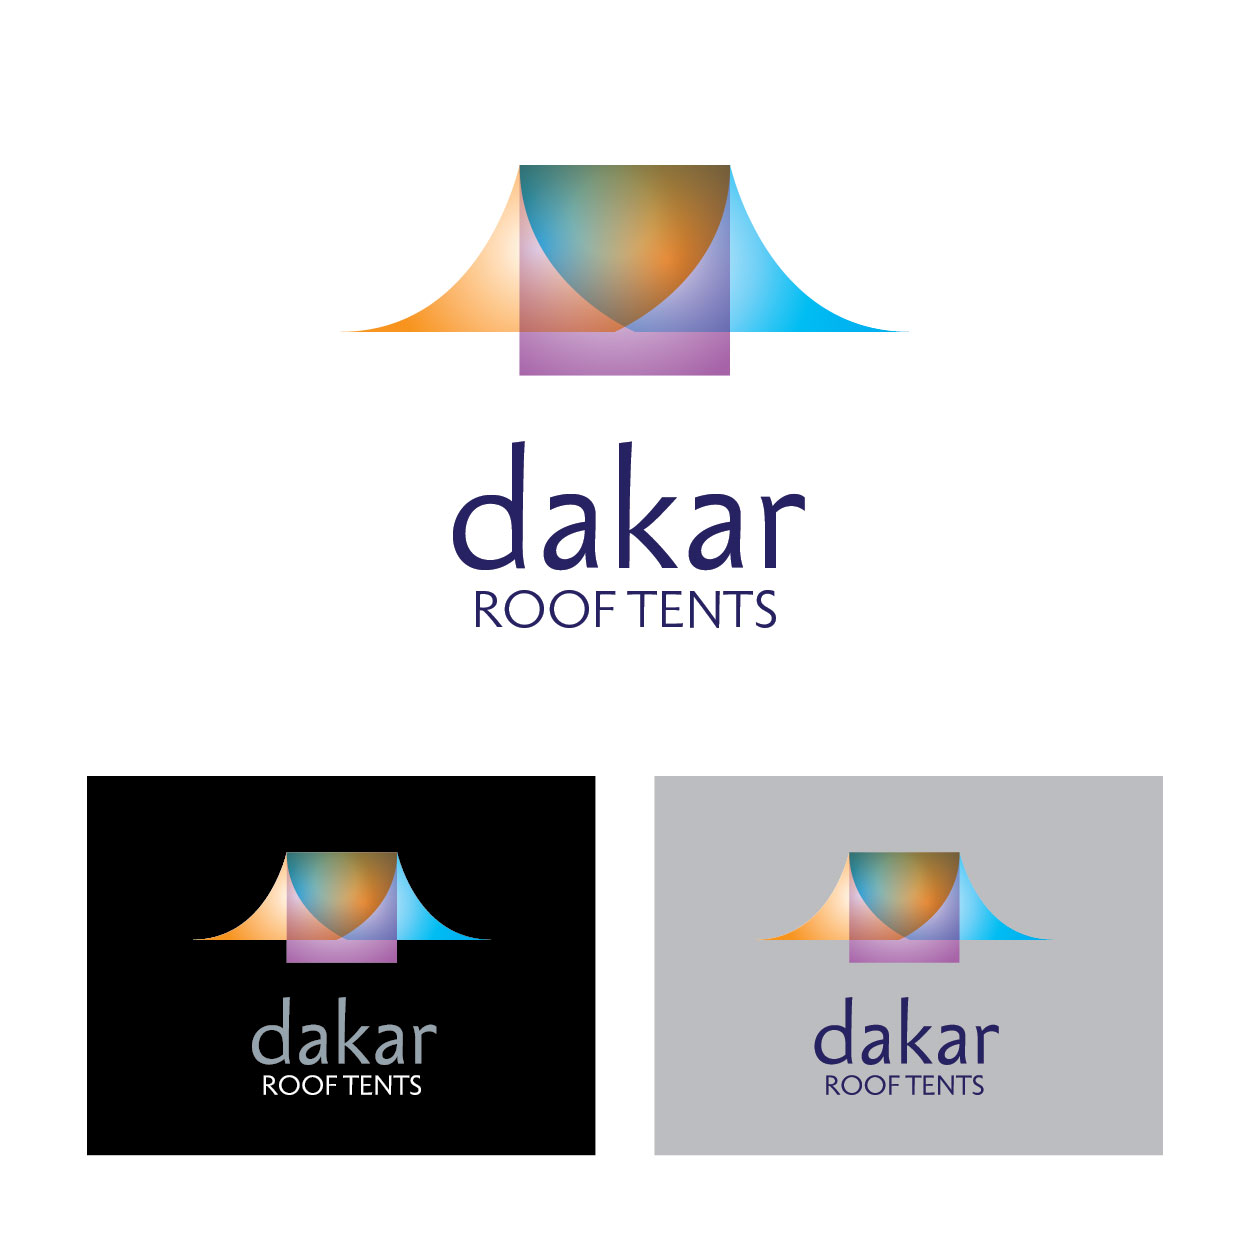 Logo Design by Josephope Sardalla - Entry No. 5 in the Logo Design Contest Dakar Roof Tents.